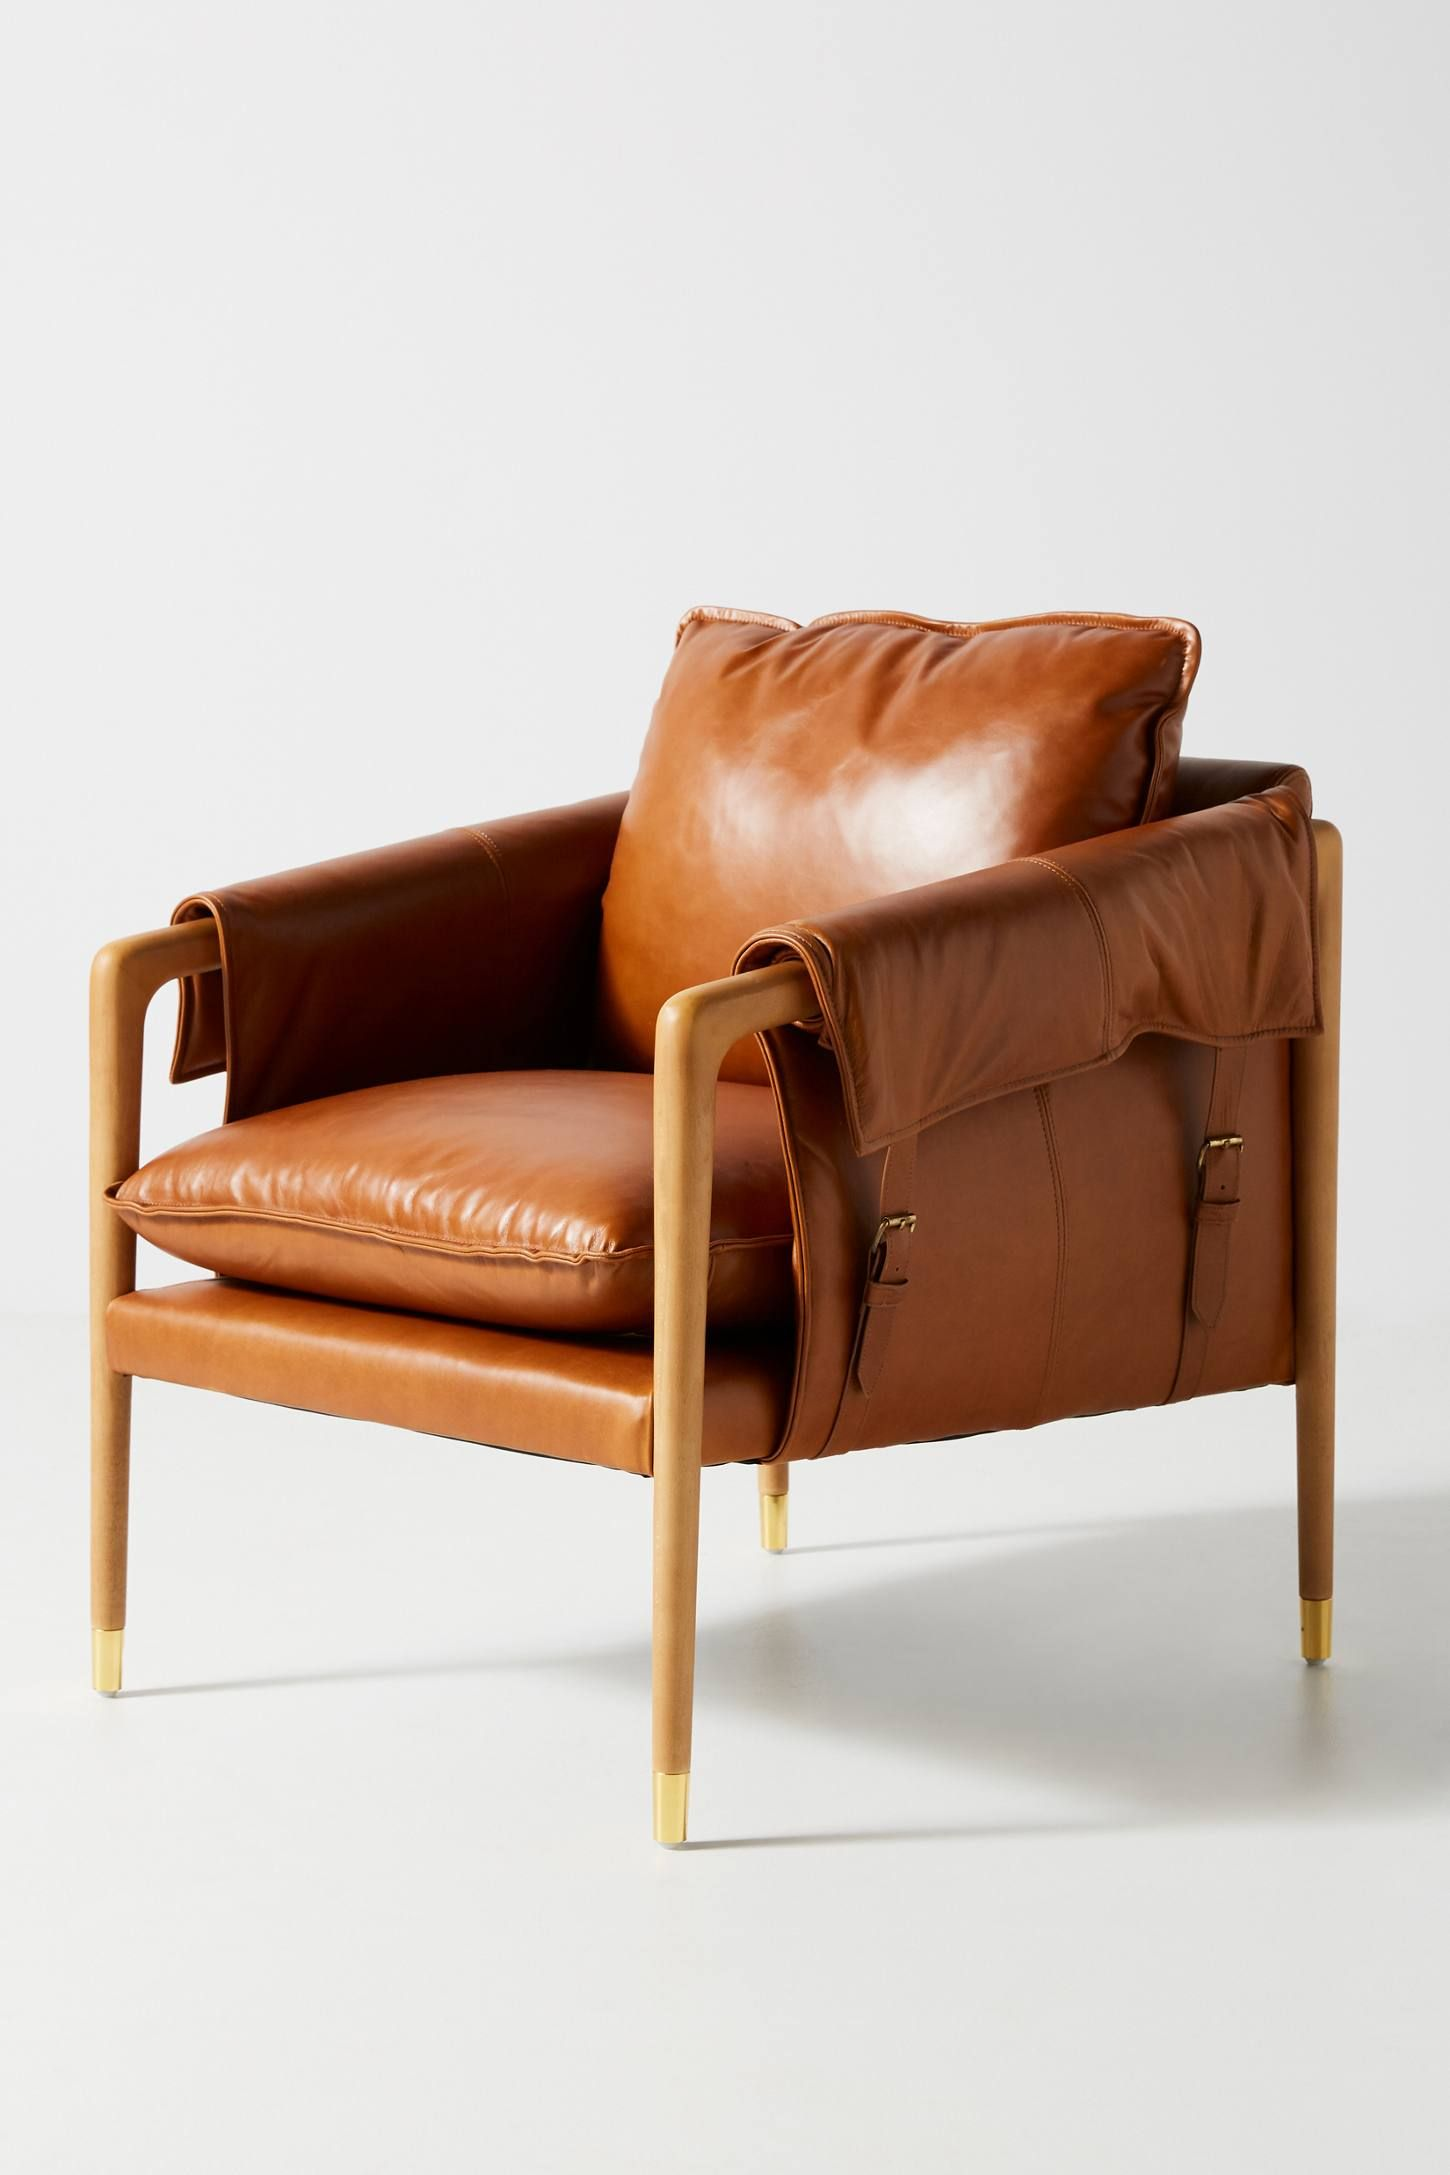 Stupendous Havana Leather Chair By Anthropologie In Brown Size All In Machost Co Dining Chair Design Ideas Machostcouk